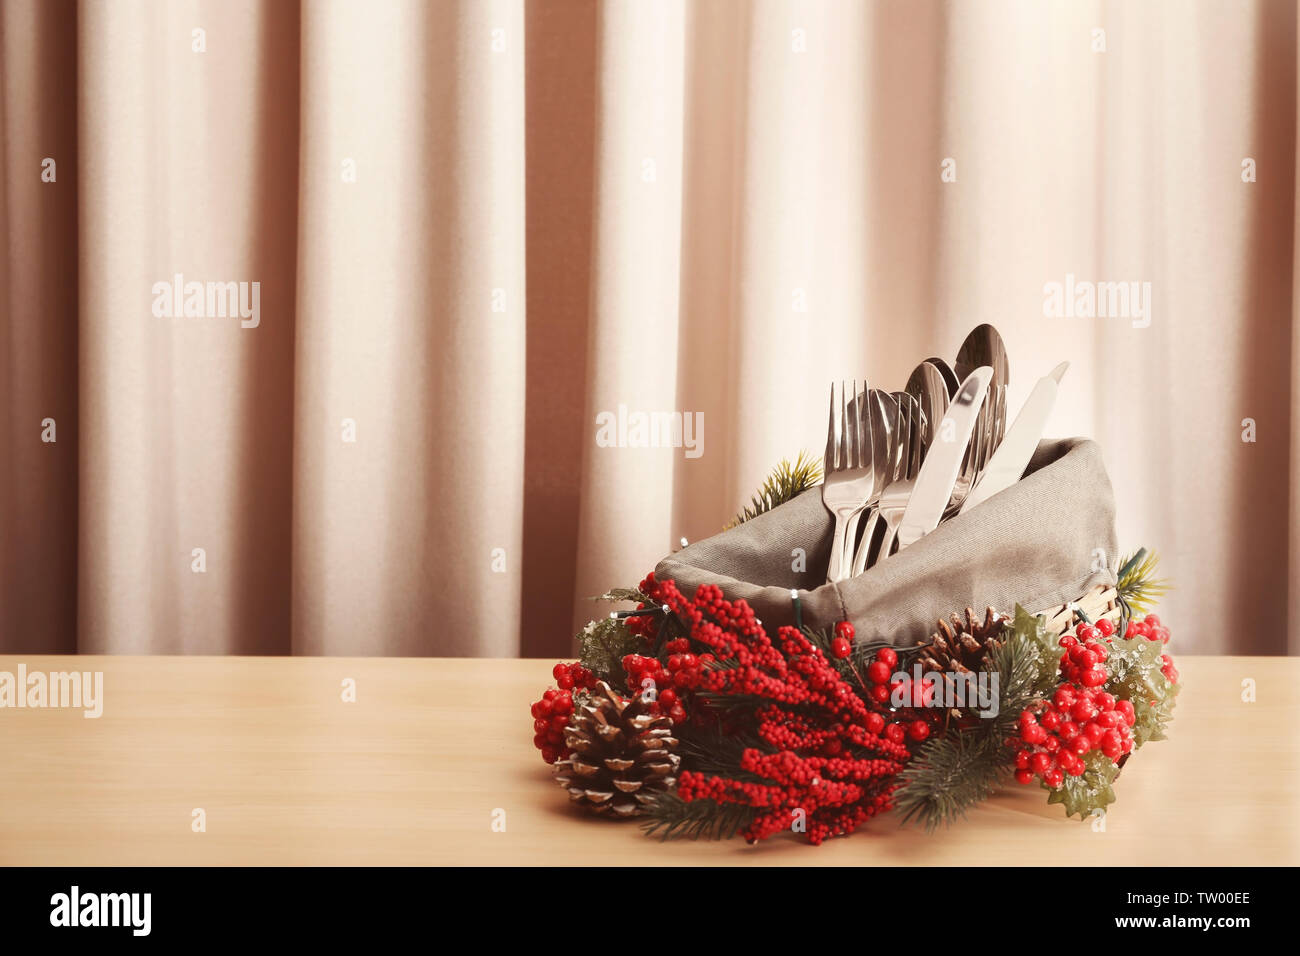 Cutlery in box on wooden table - Stock Image